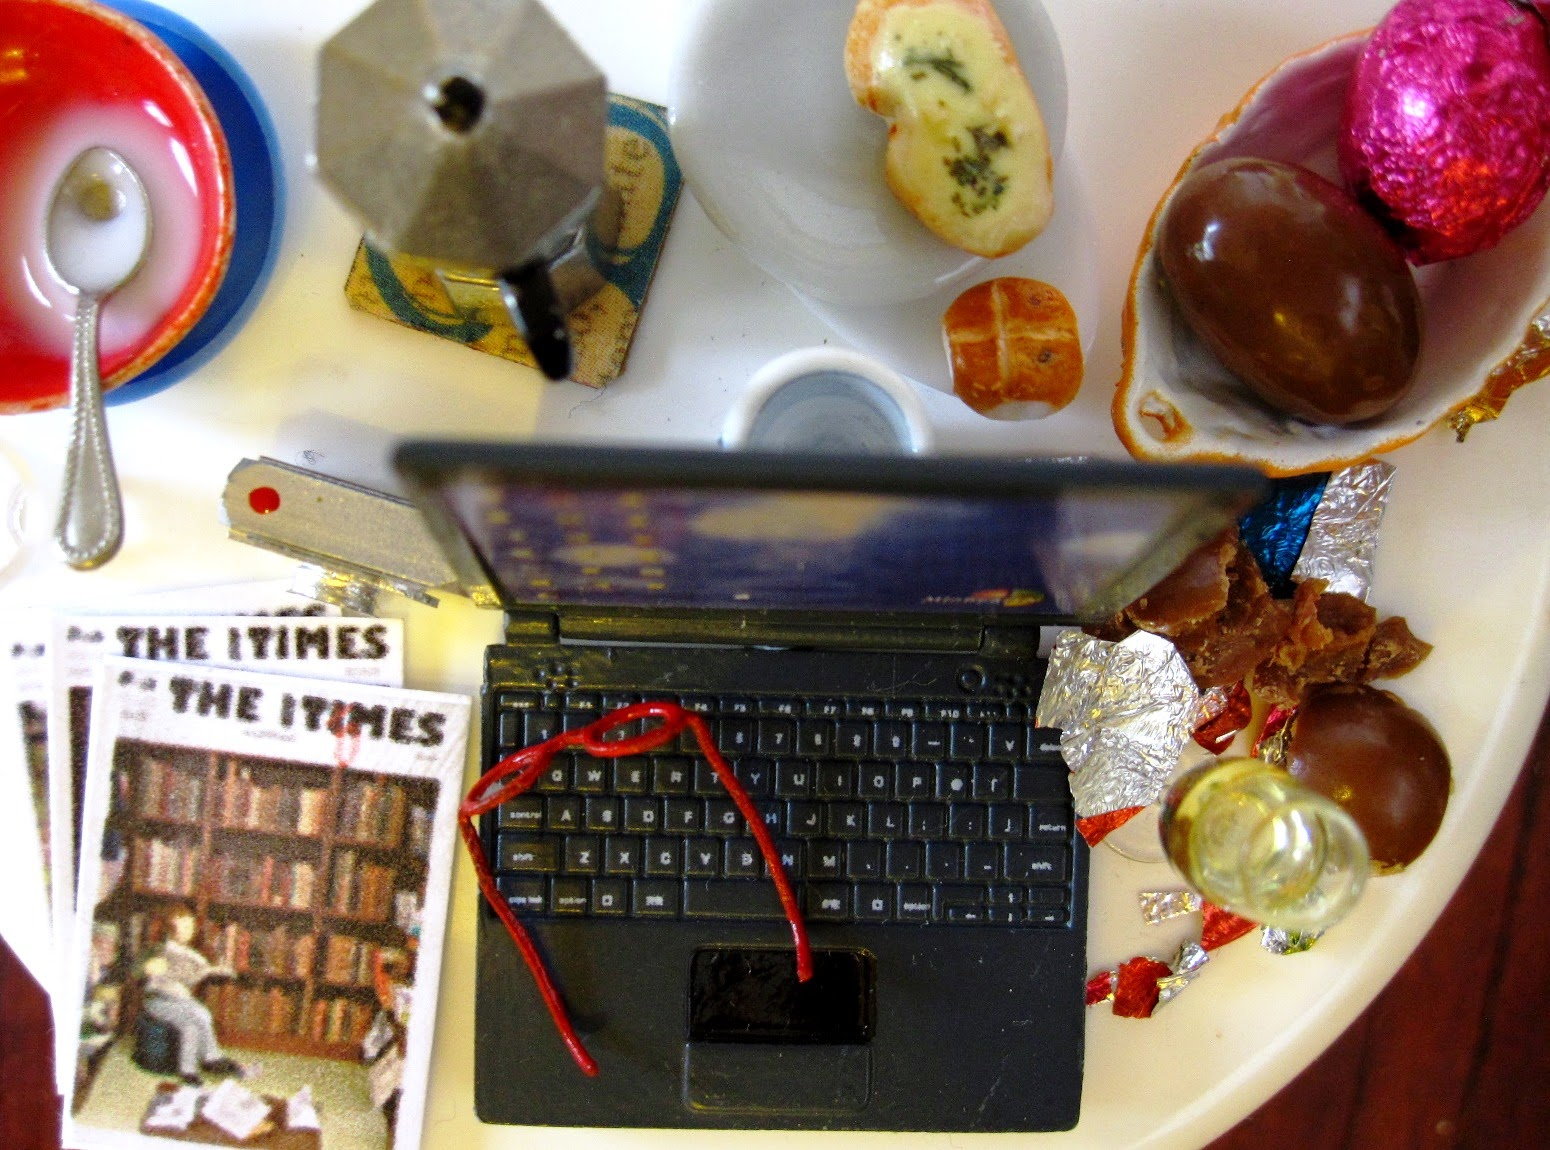 Modern dolls' house miniature round table with a laptop computer, digital camera, reading glasses, back issues of The tiny Times, and plates and bowls and cups containing half-eaten pieces of food, including Easter eggs.